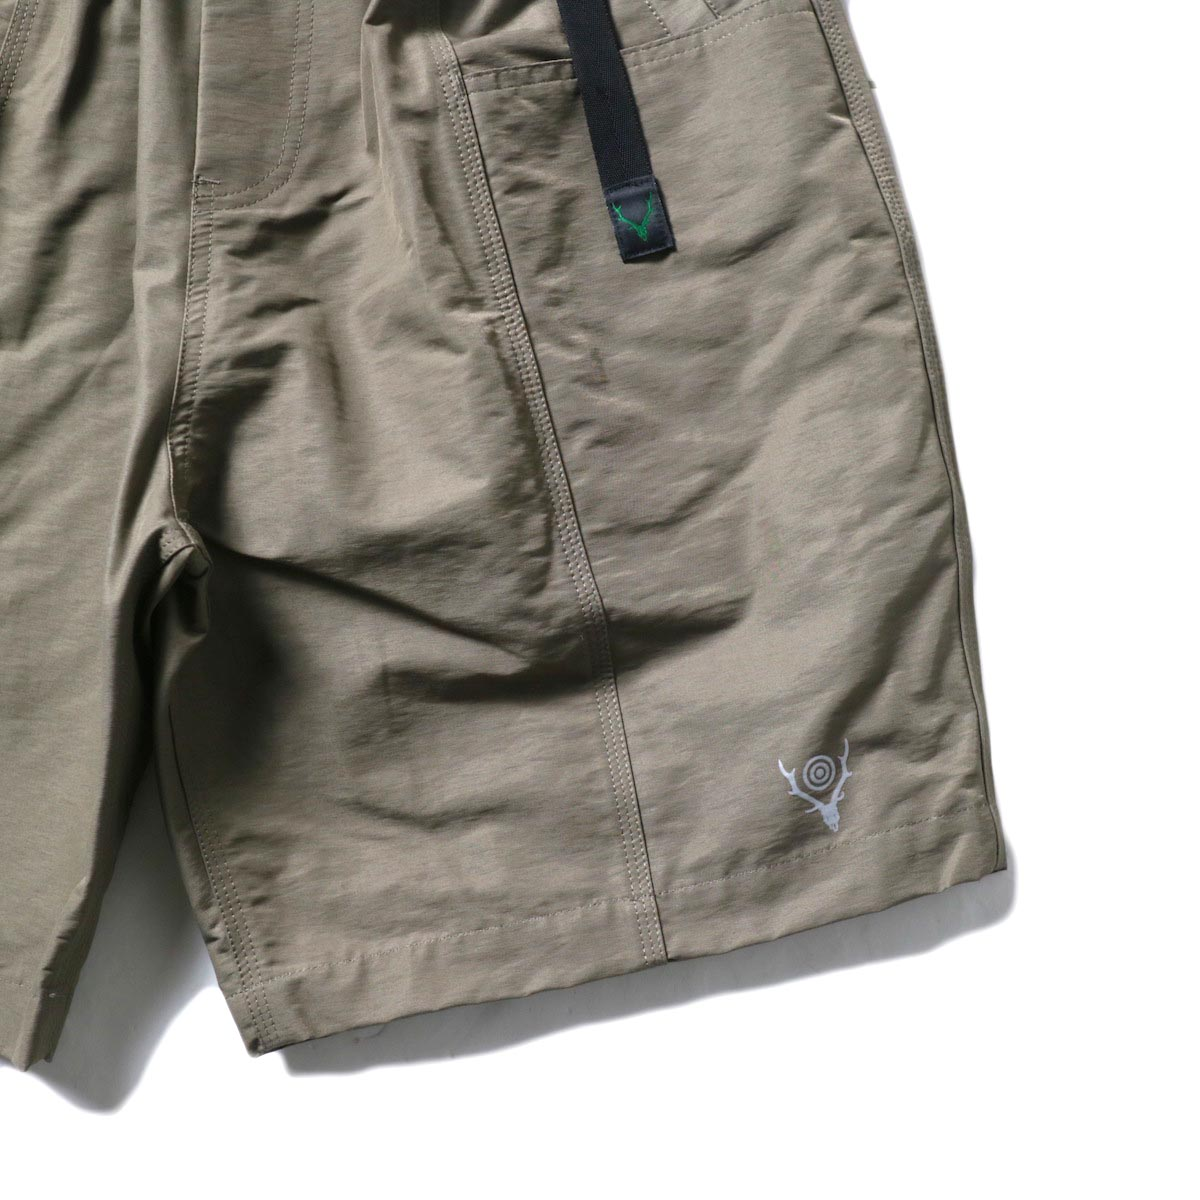 South2 West8 / BELTED C.S. SHORT - C/N GROSGRAIN (Taupe)裾、ロゴ